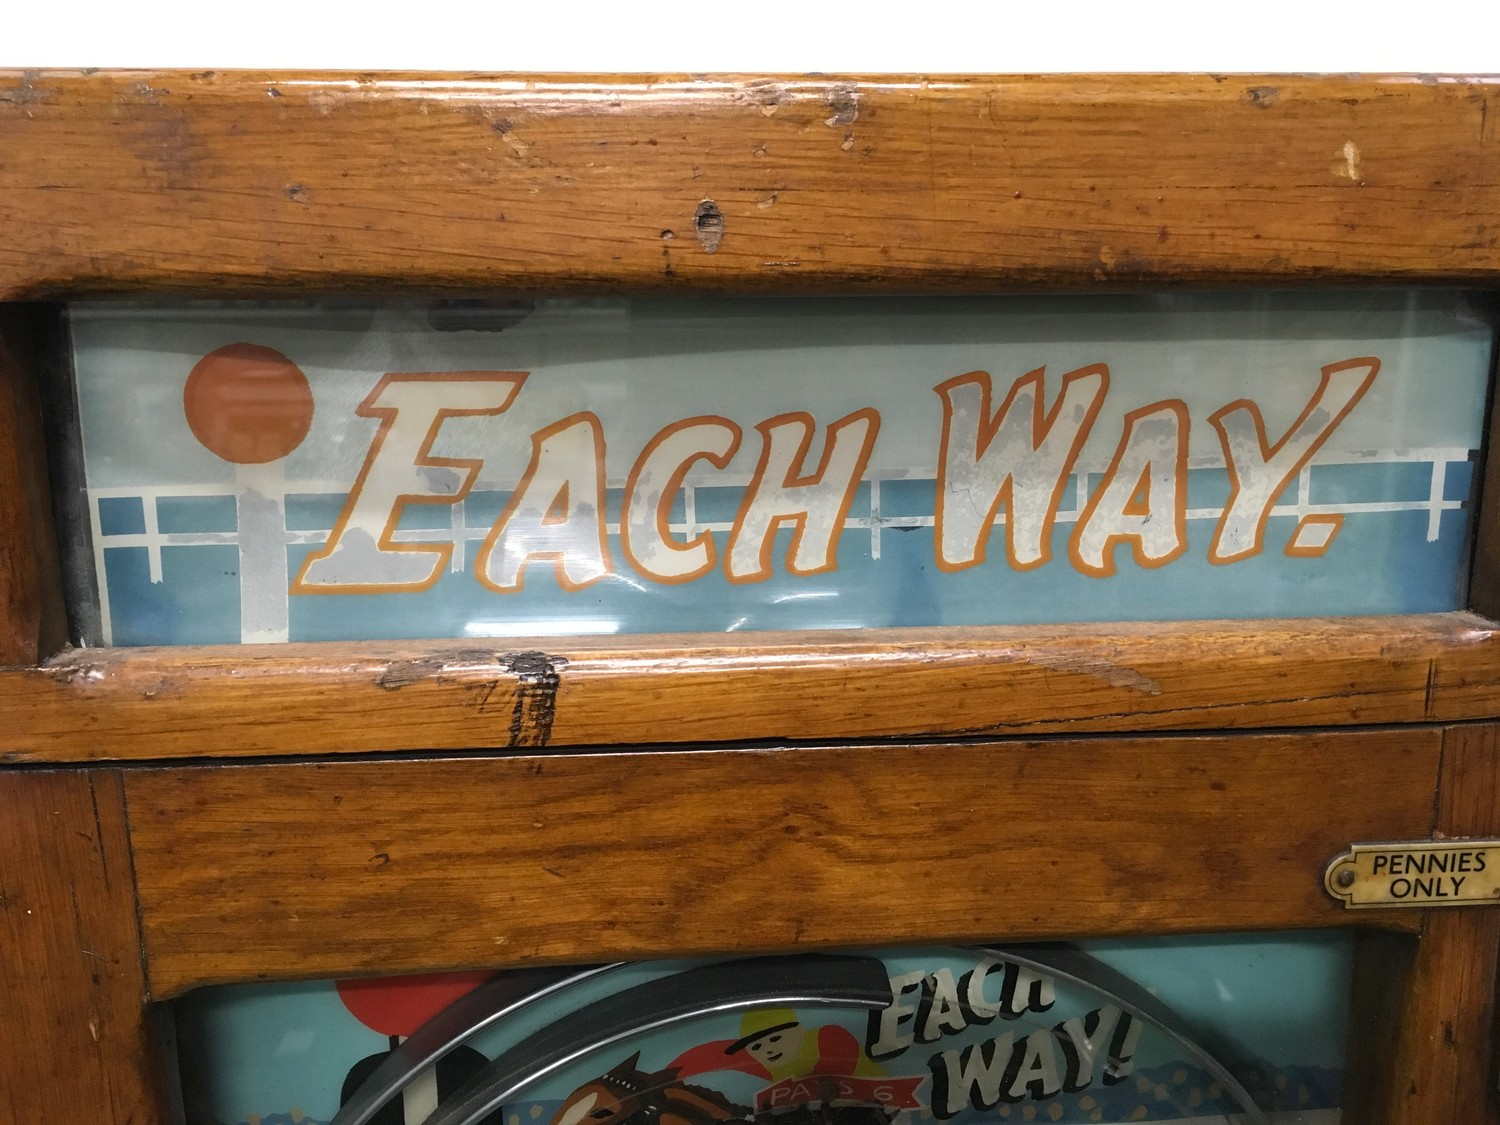 Eachway Allwin with keys on 1d coin. - Image 5 of 8